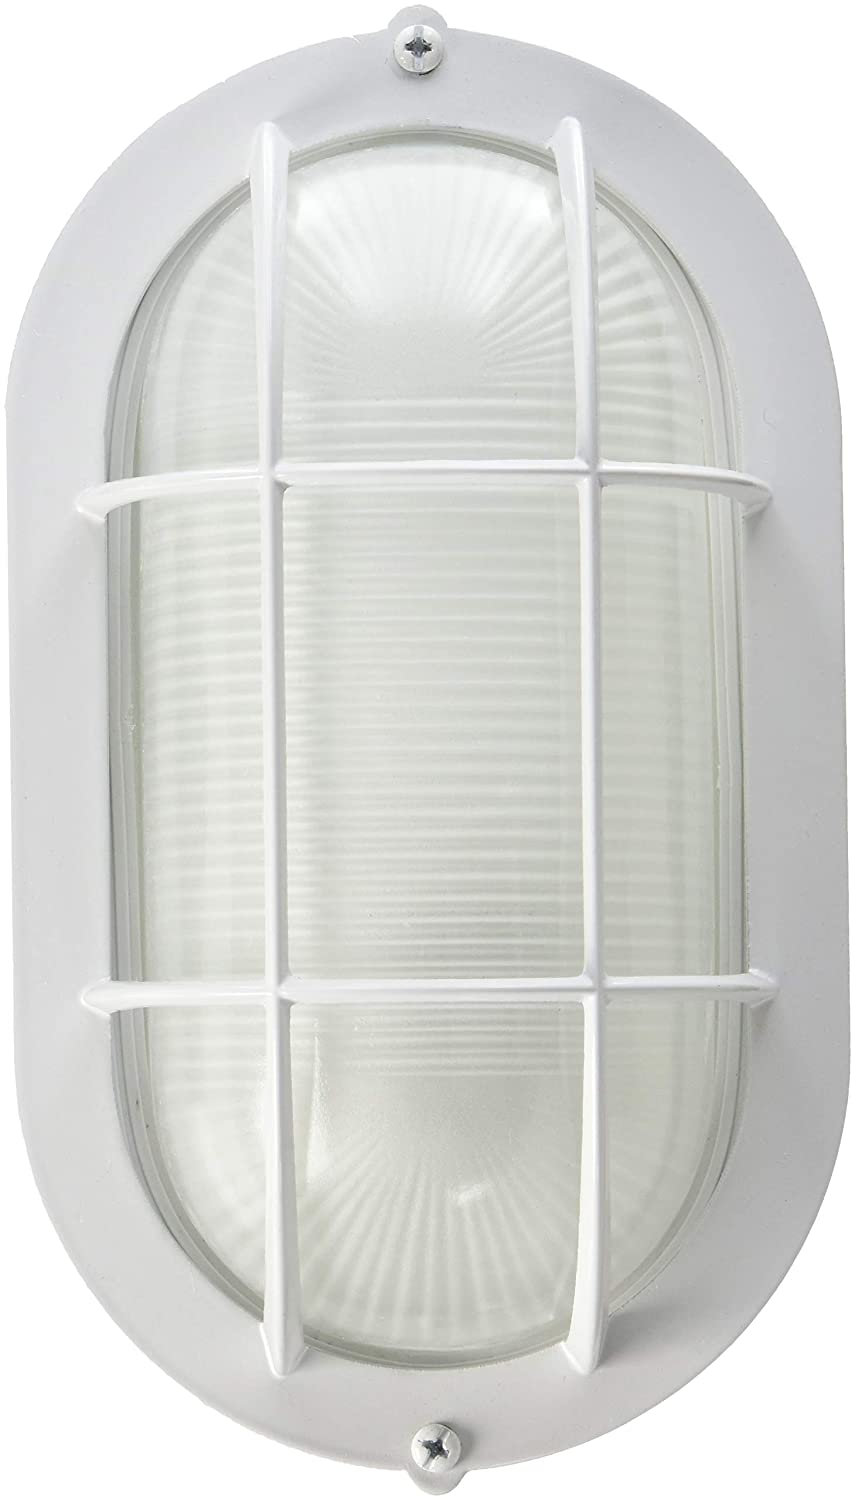 White nautical style caged wall sconce. #wallsconce #exteriorlight #nauticalstyle #cagedlight #cagedsconce #sconces